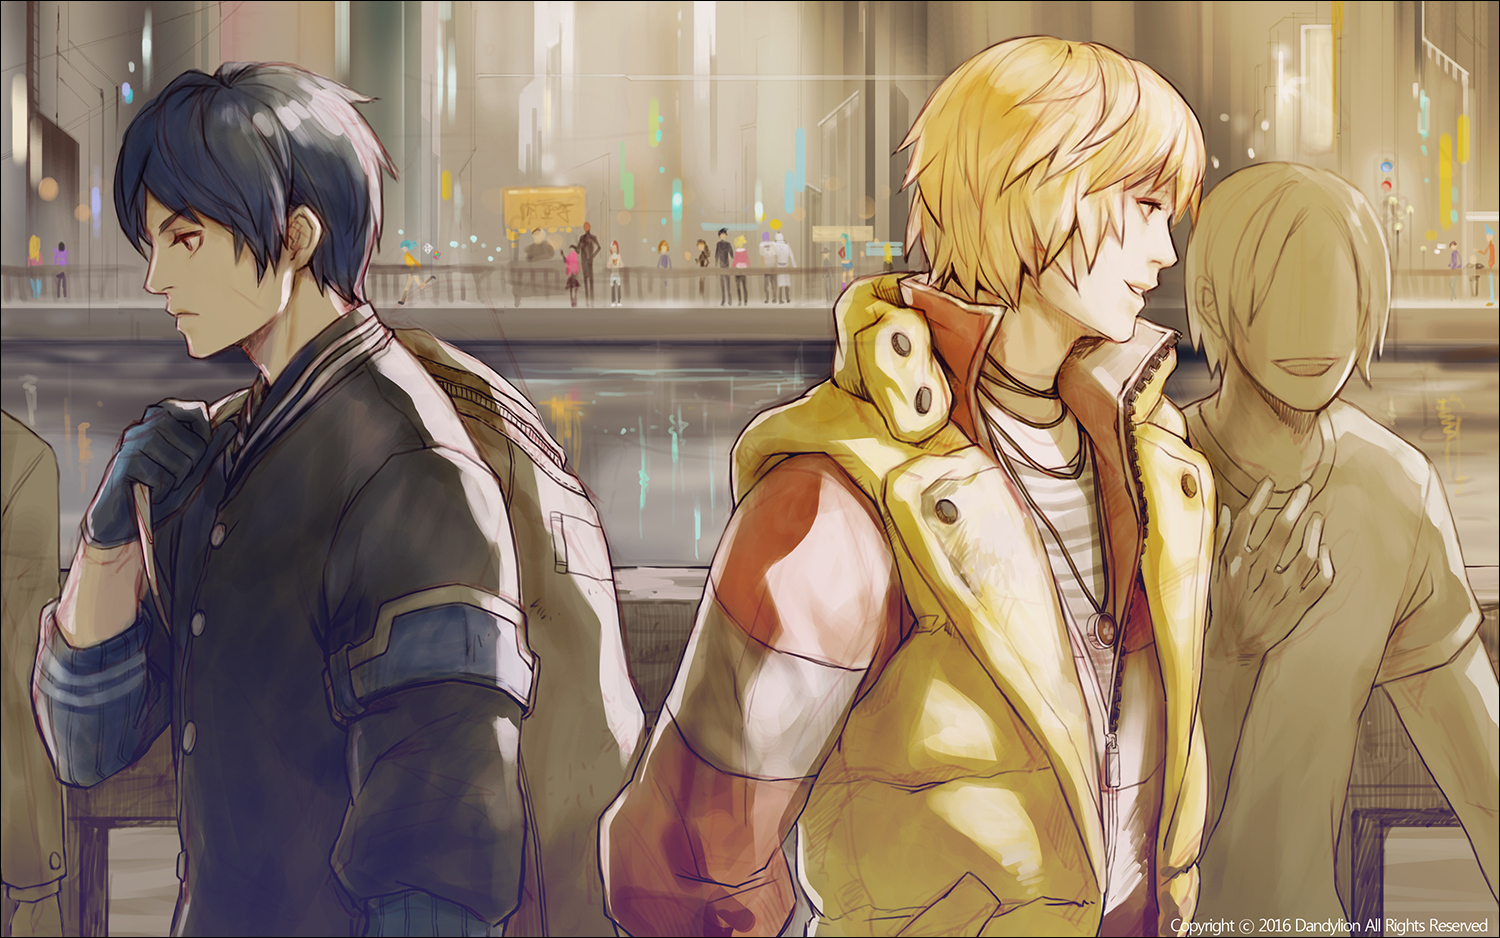 Sion and Albus cross